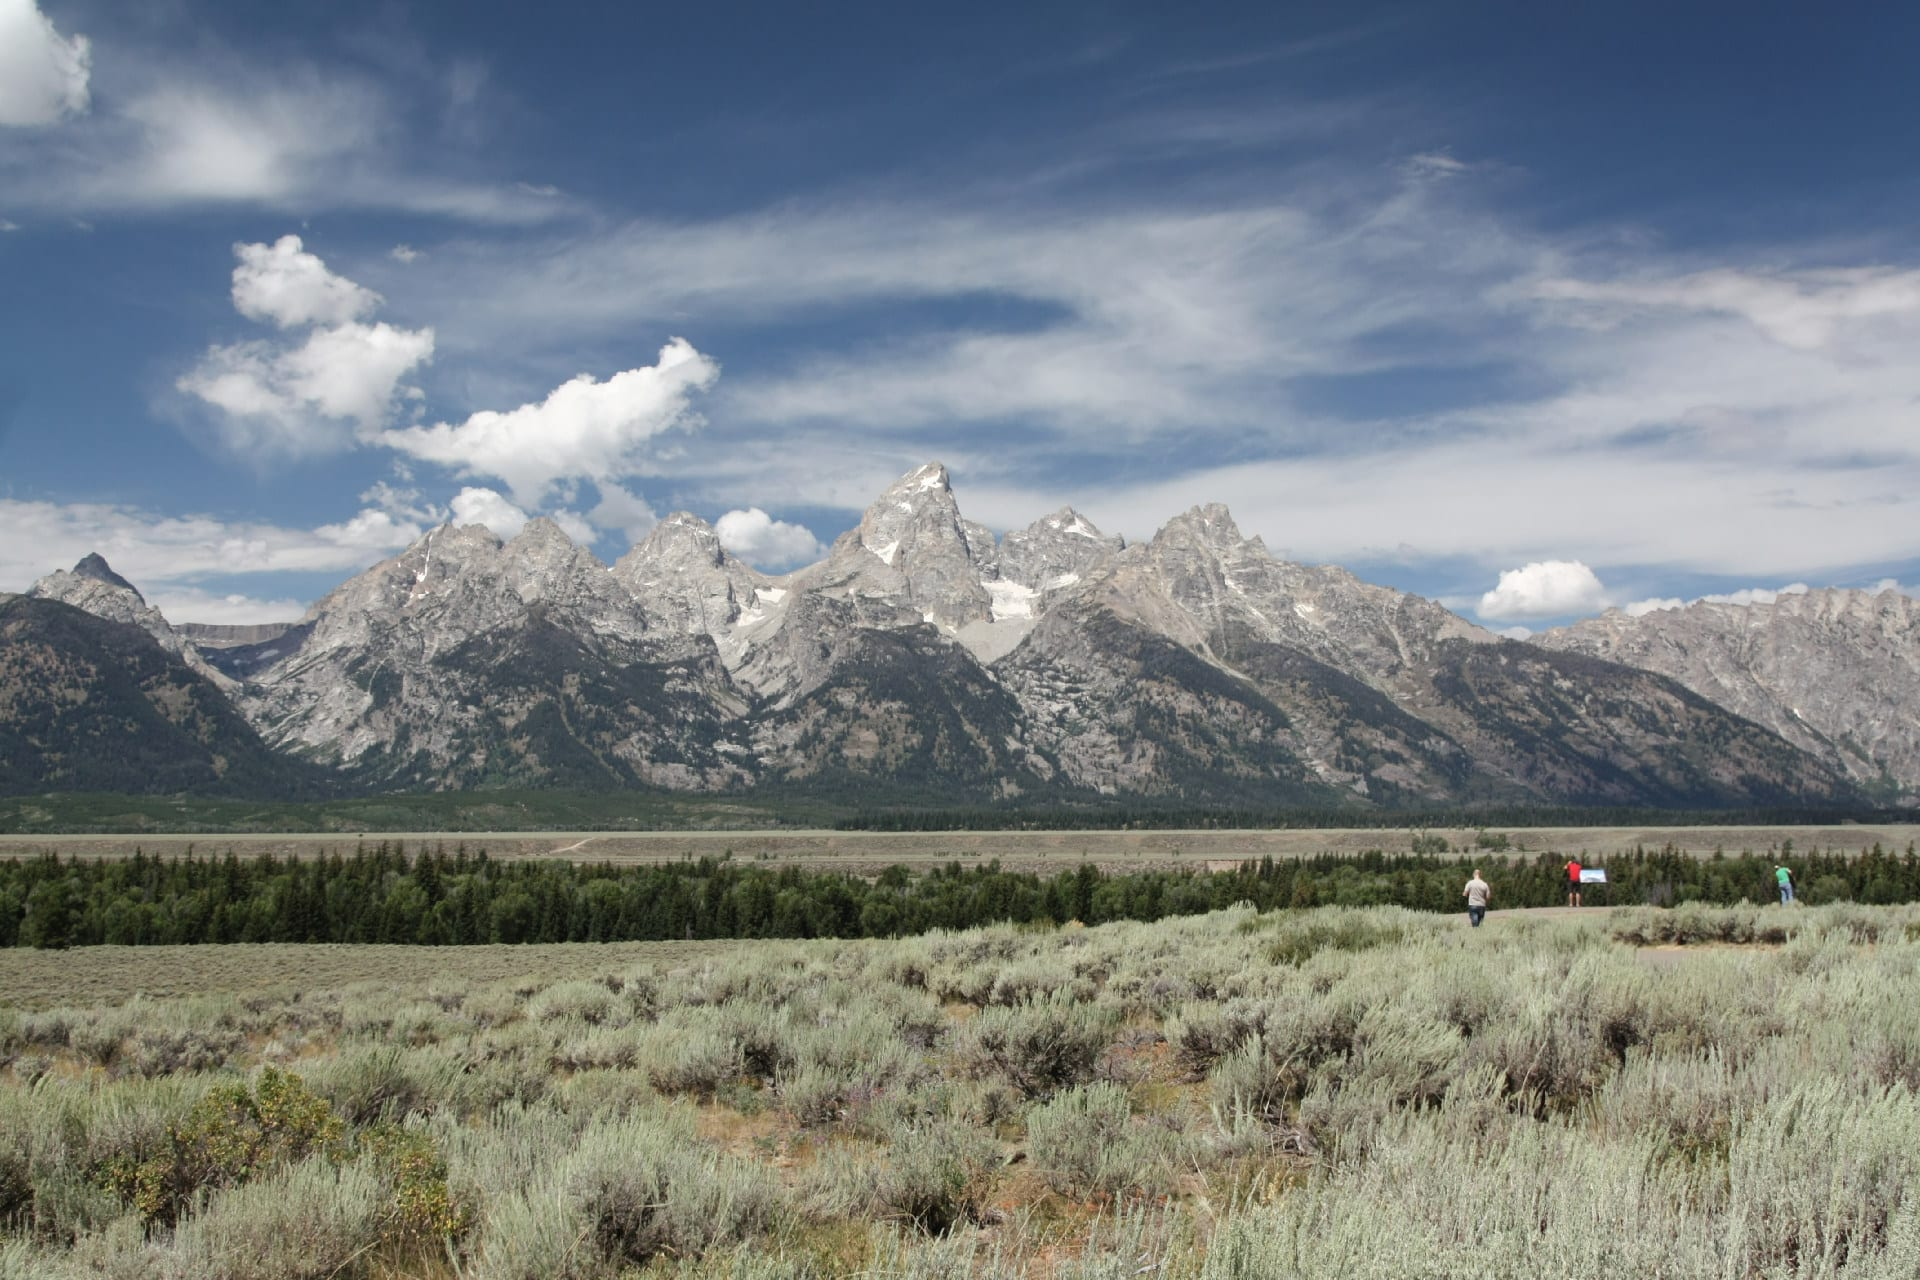 Yellowstone - 2013-08-11, 12h24 - 1876 - Grand Teton_DxO_HD1920